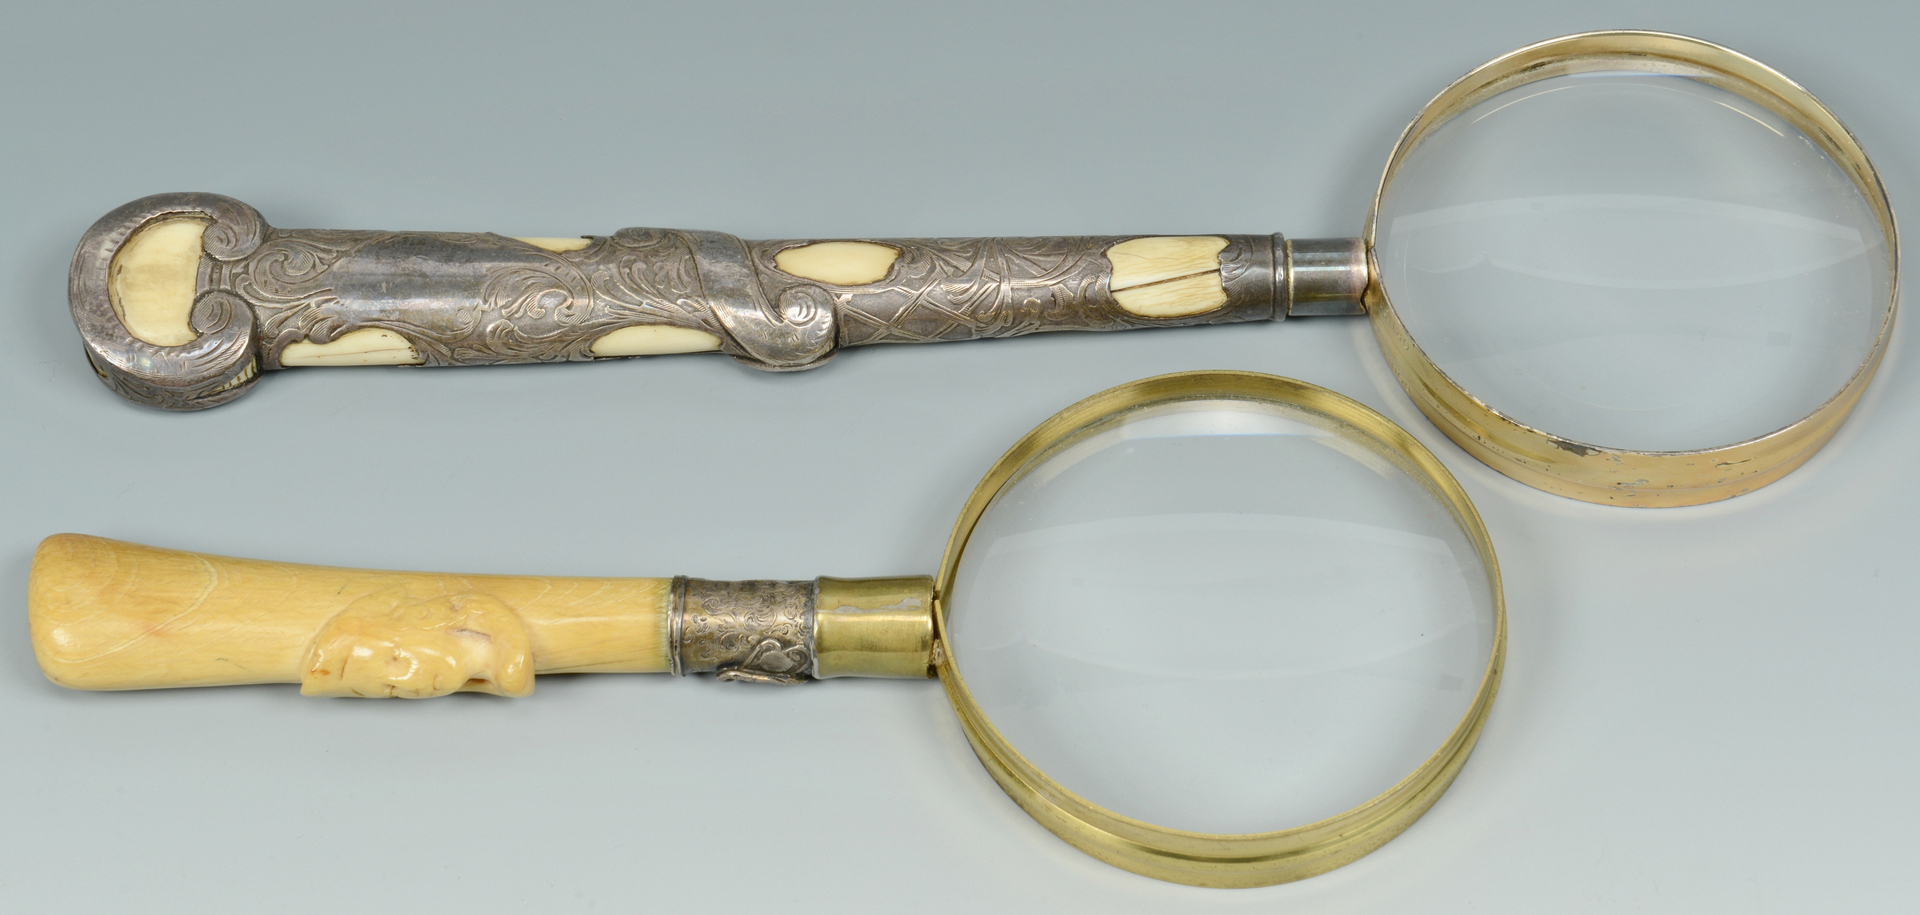 Lot 3088137: 4 Antique Ivory Items: magnifiers, tusk bracelet,